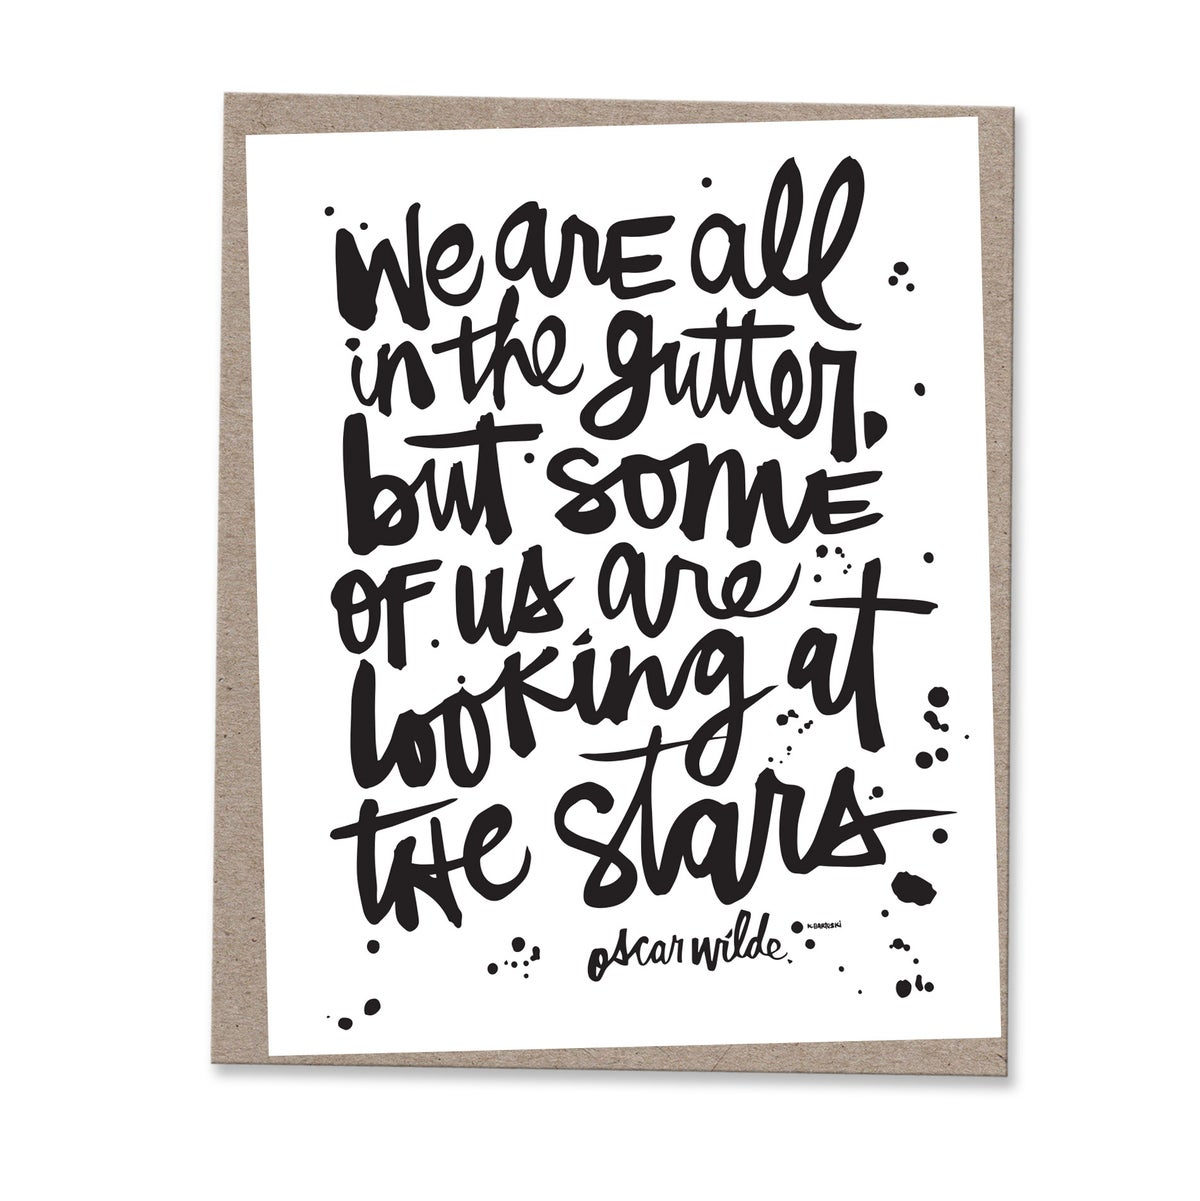 Image of LOOKING AT THE STARS #kbscript print